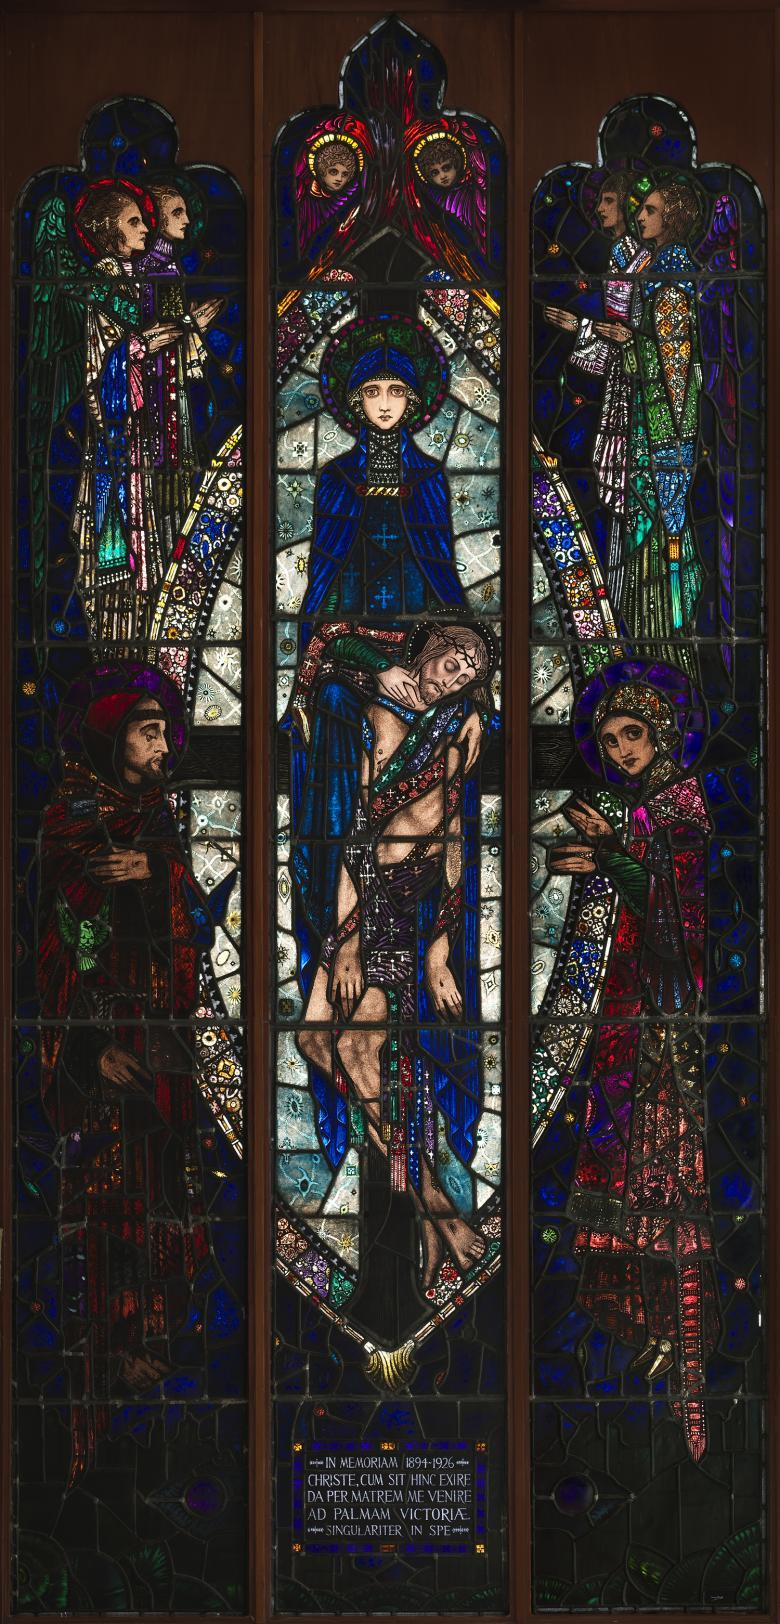 Harry Clarke (1889-1931), 'The Mother of Sorrows', 1926. © National Gallery of Ireland.